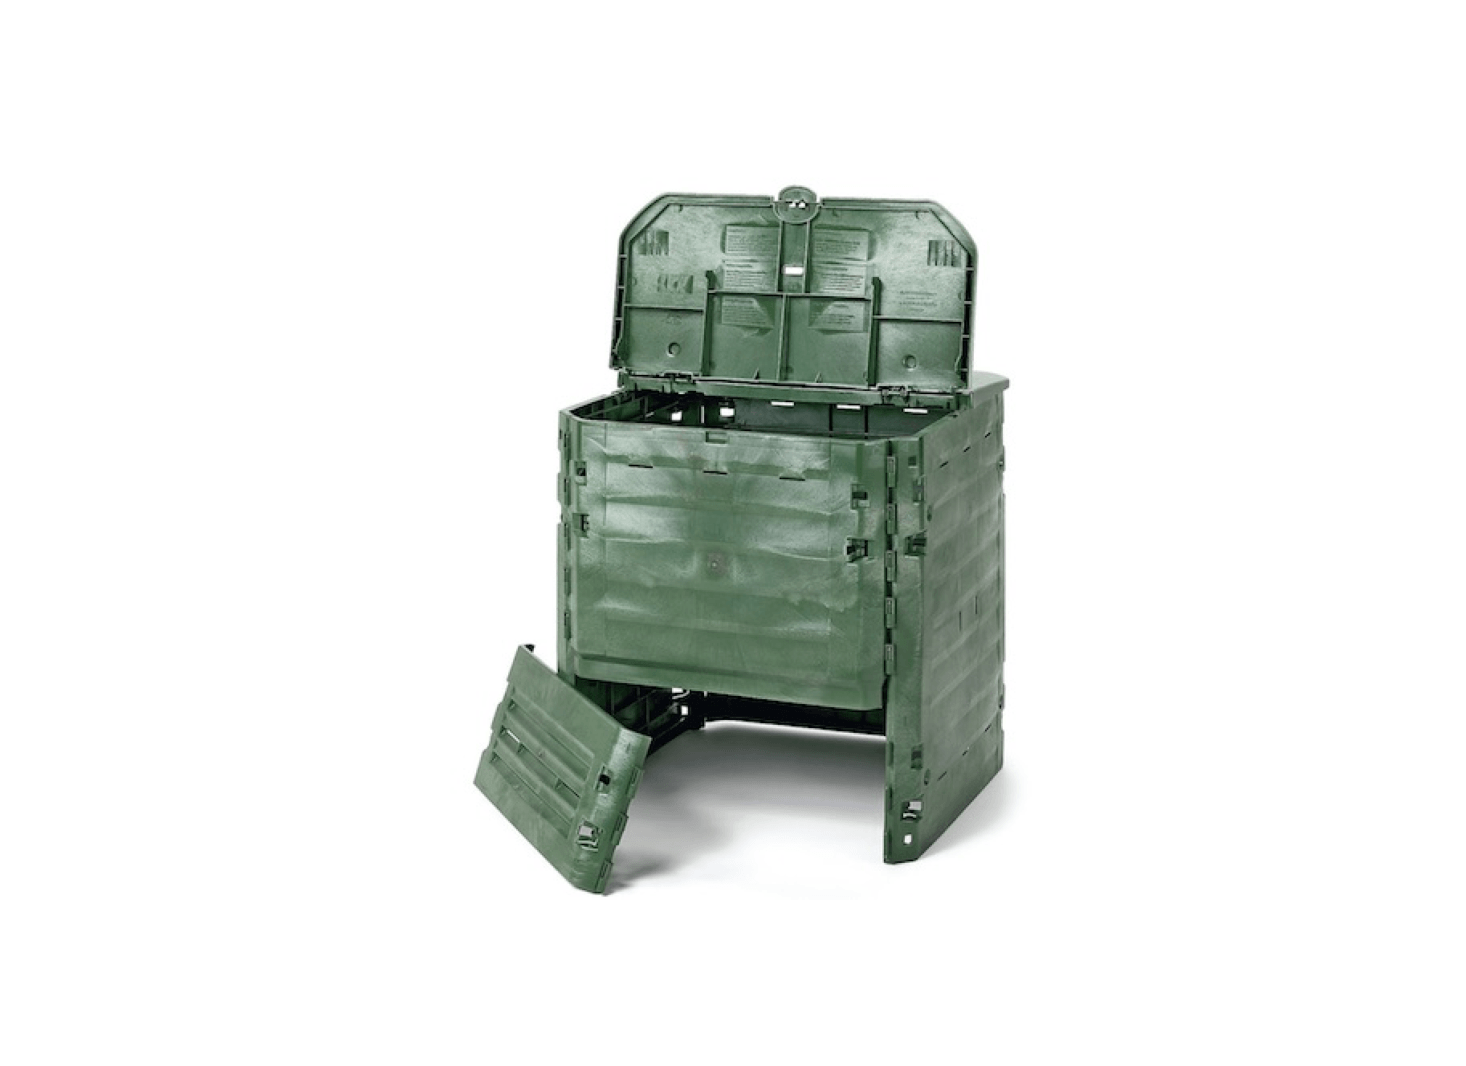 An Insulating Plastic Thermo-Composter is €87 from Manufactum.